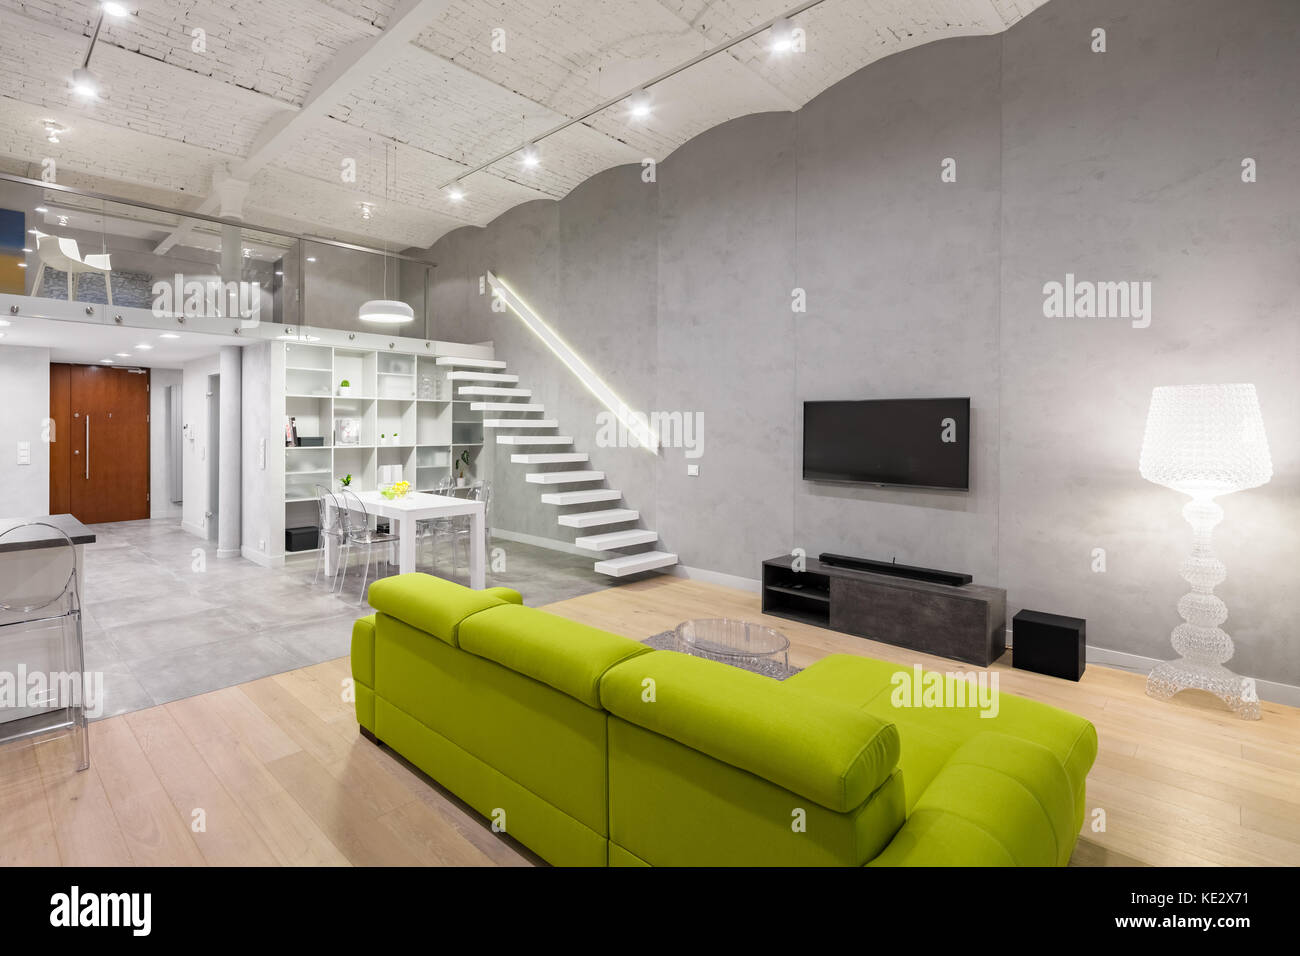 Home interior with green couch, tv and mezzanine - Stock Image